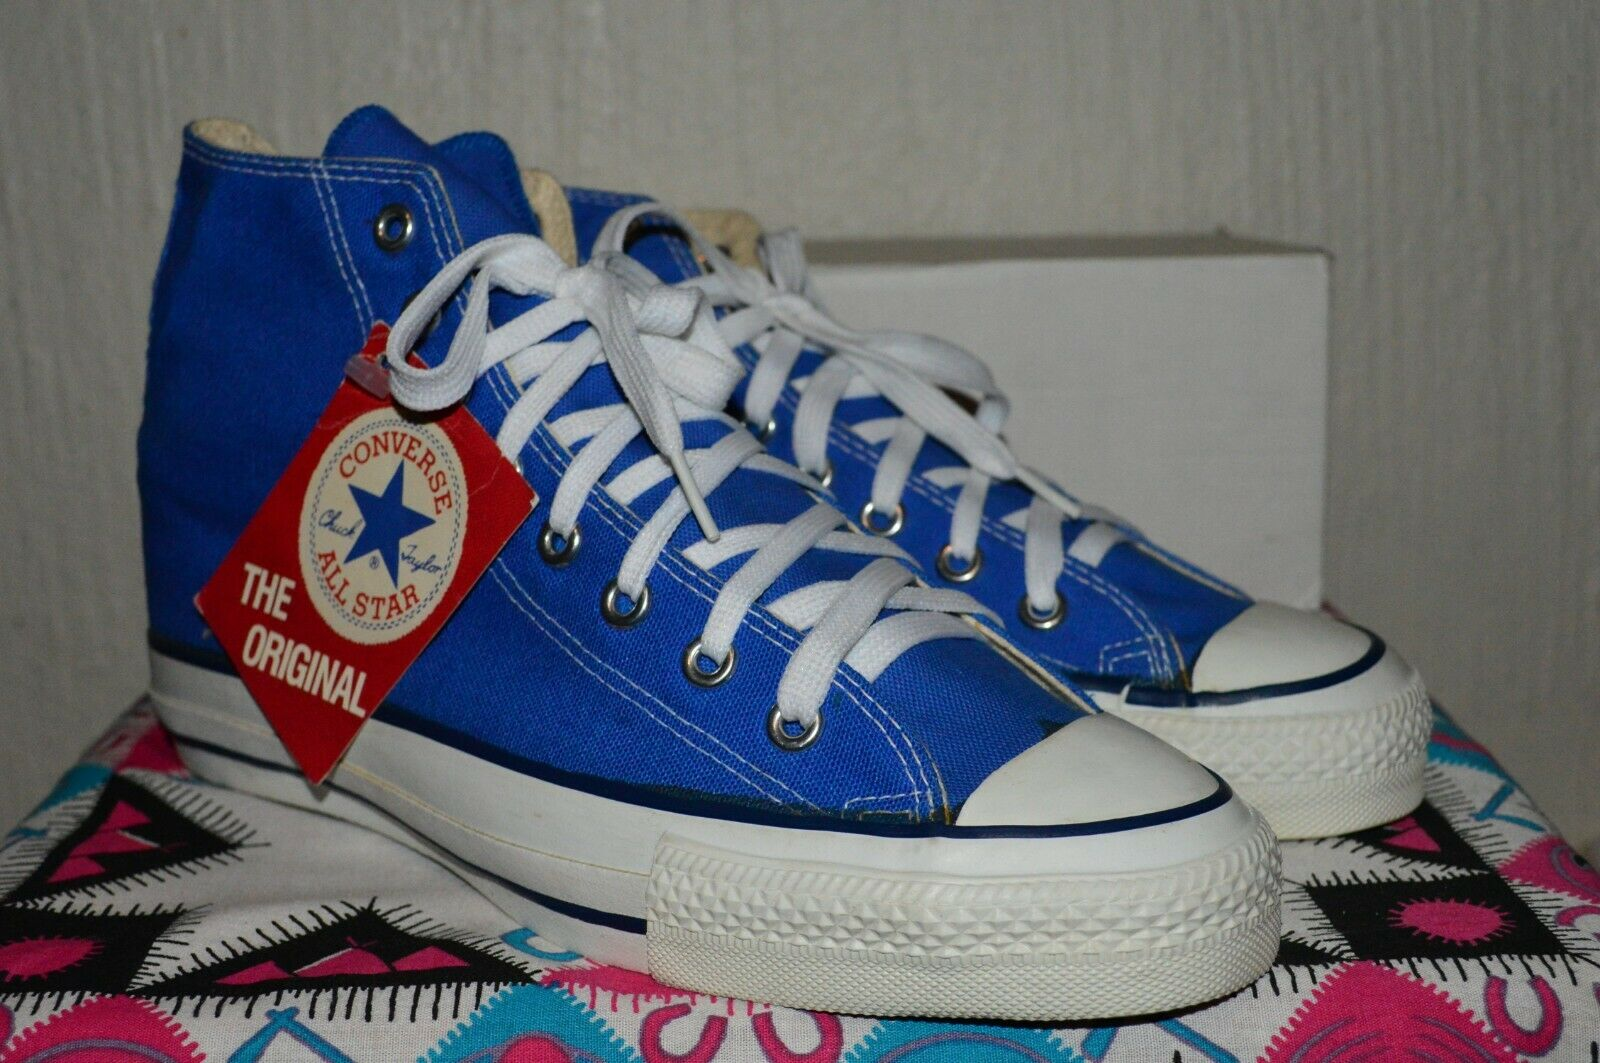 Converse All Star 80's Extra Stitch Vintage Rare Deadstock OG MADE IN USA 8 NWOB